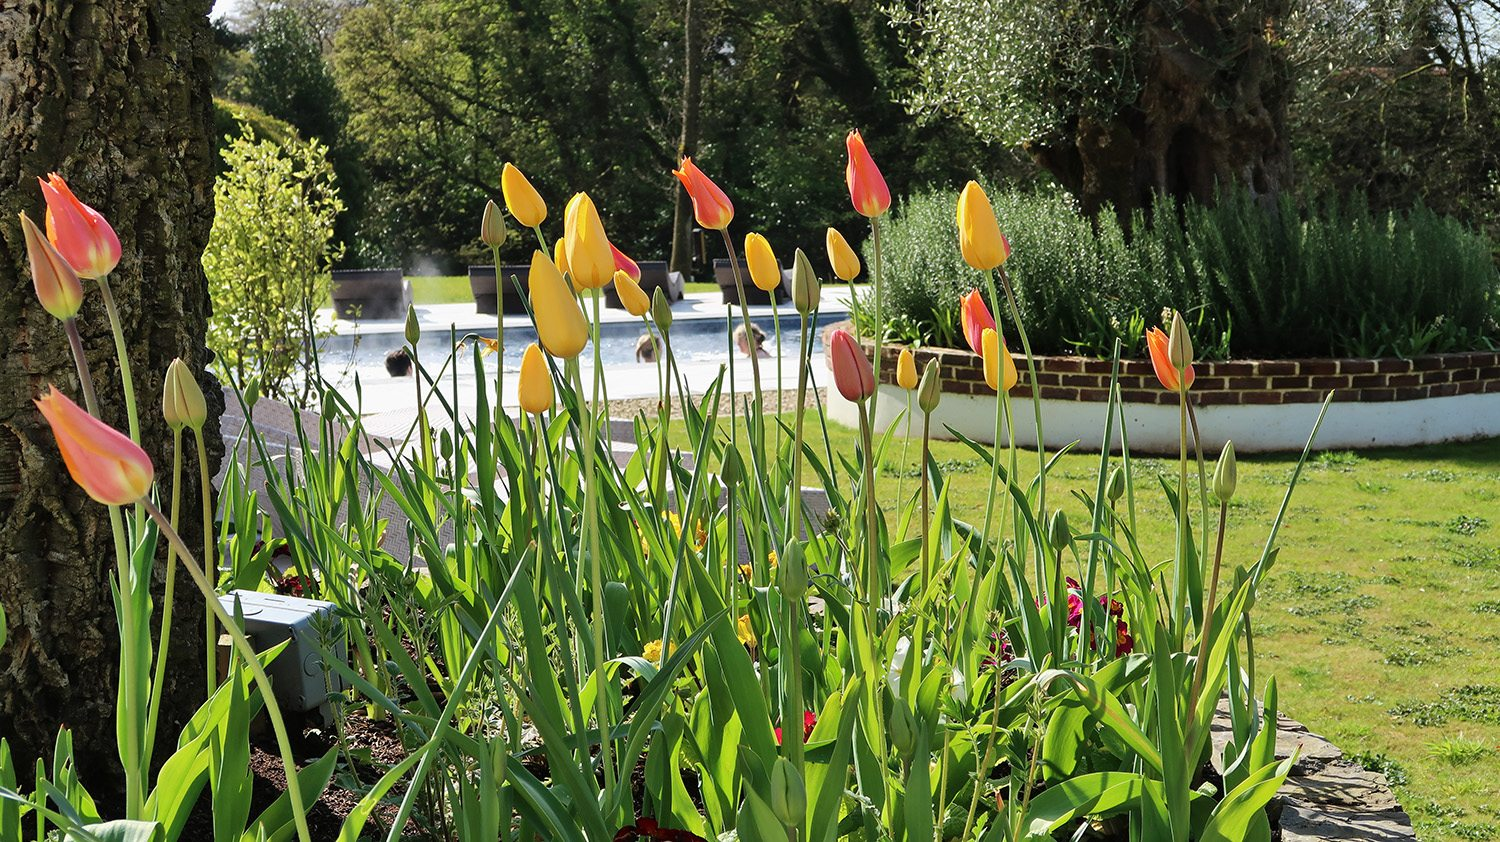 Tulips in the foreground and through them you can see people swimming in the outdoor pool